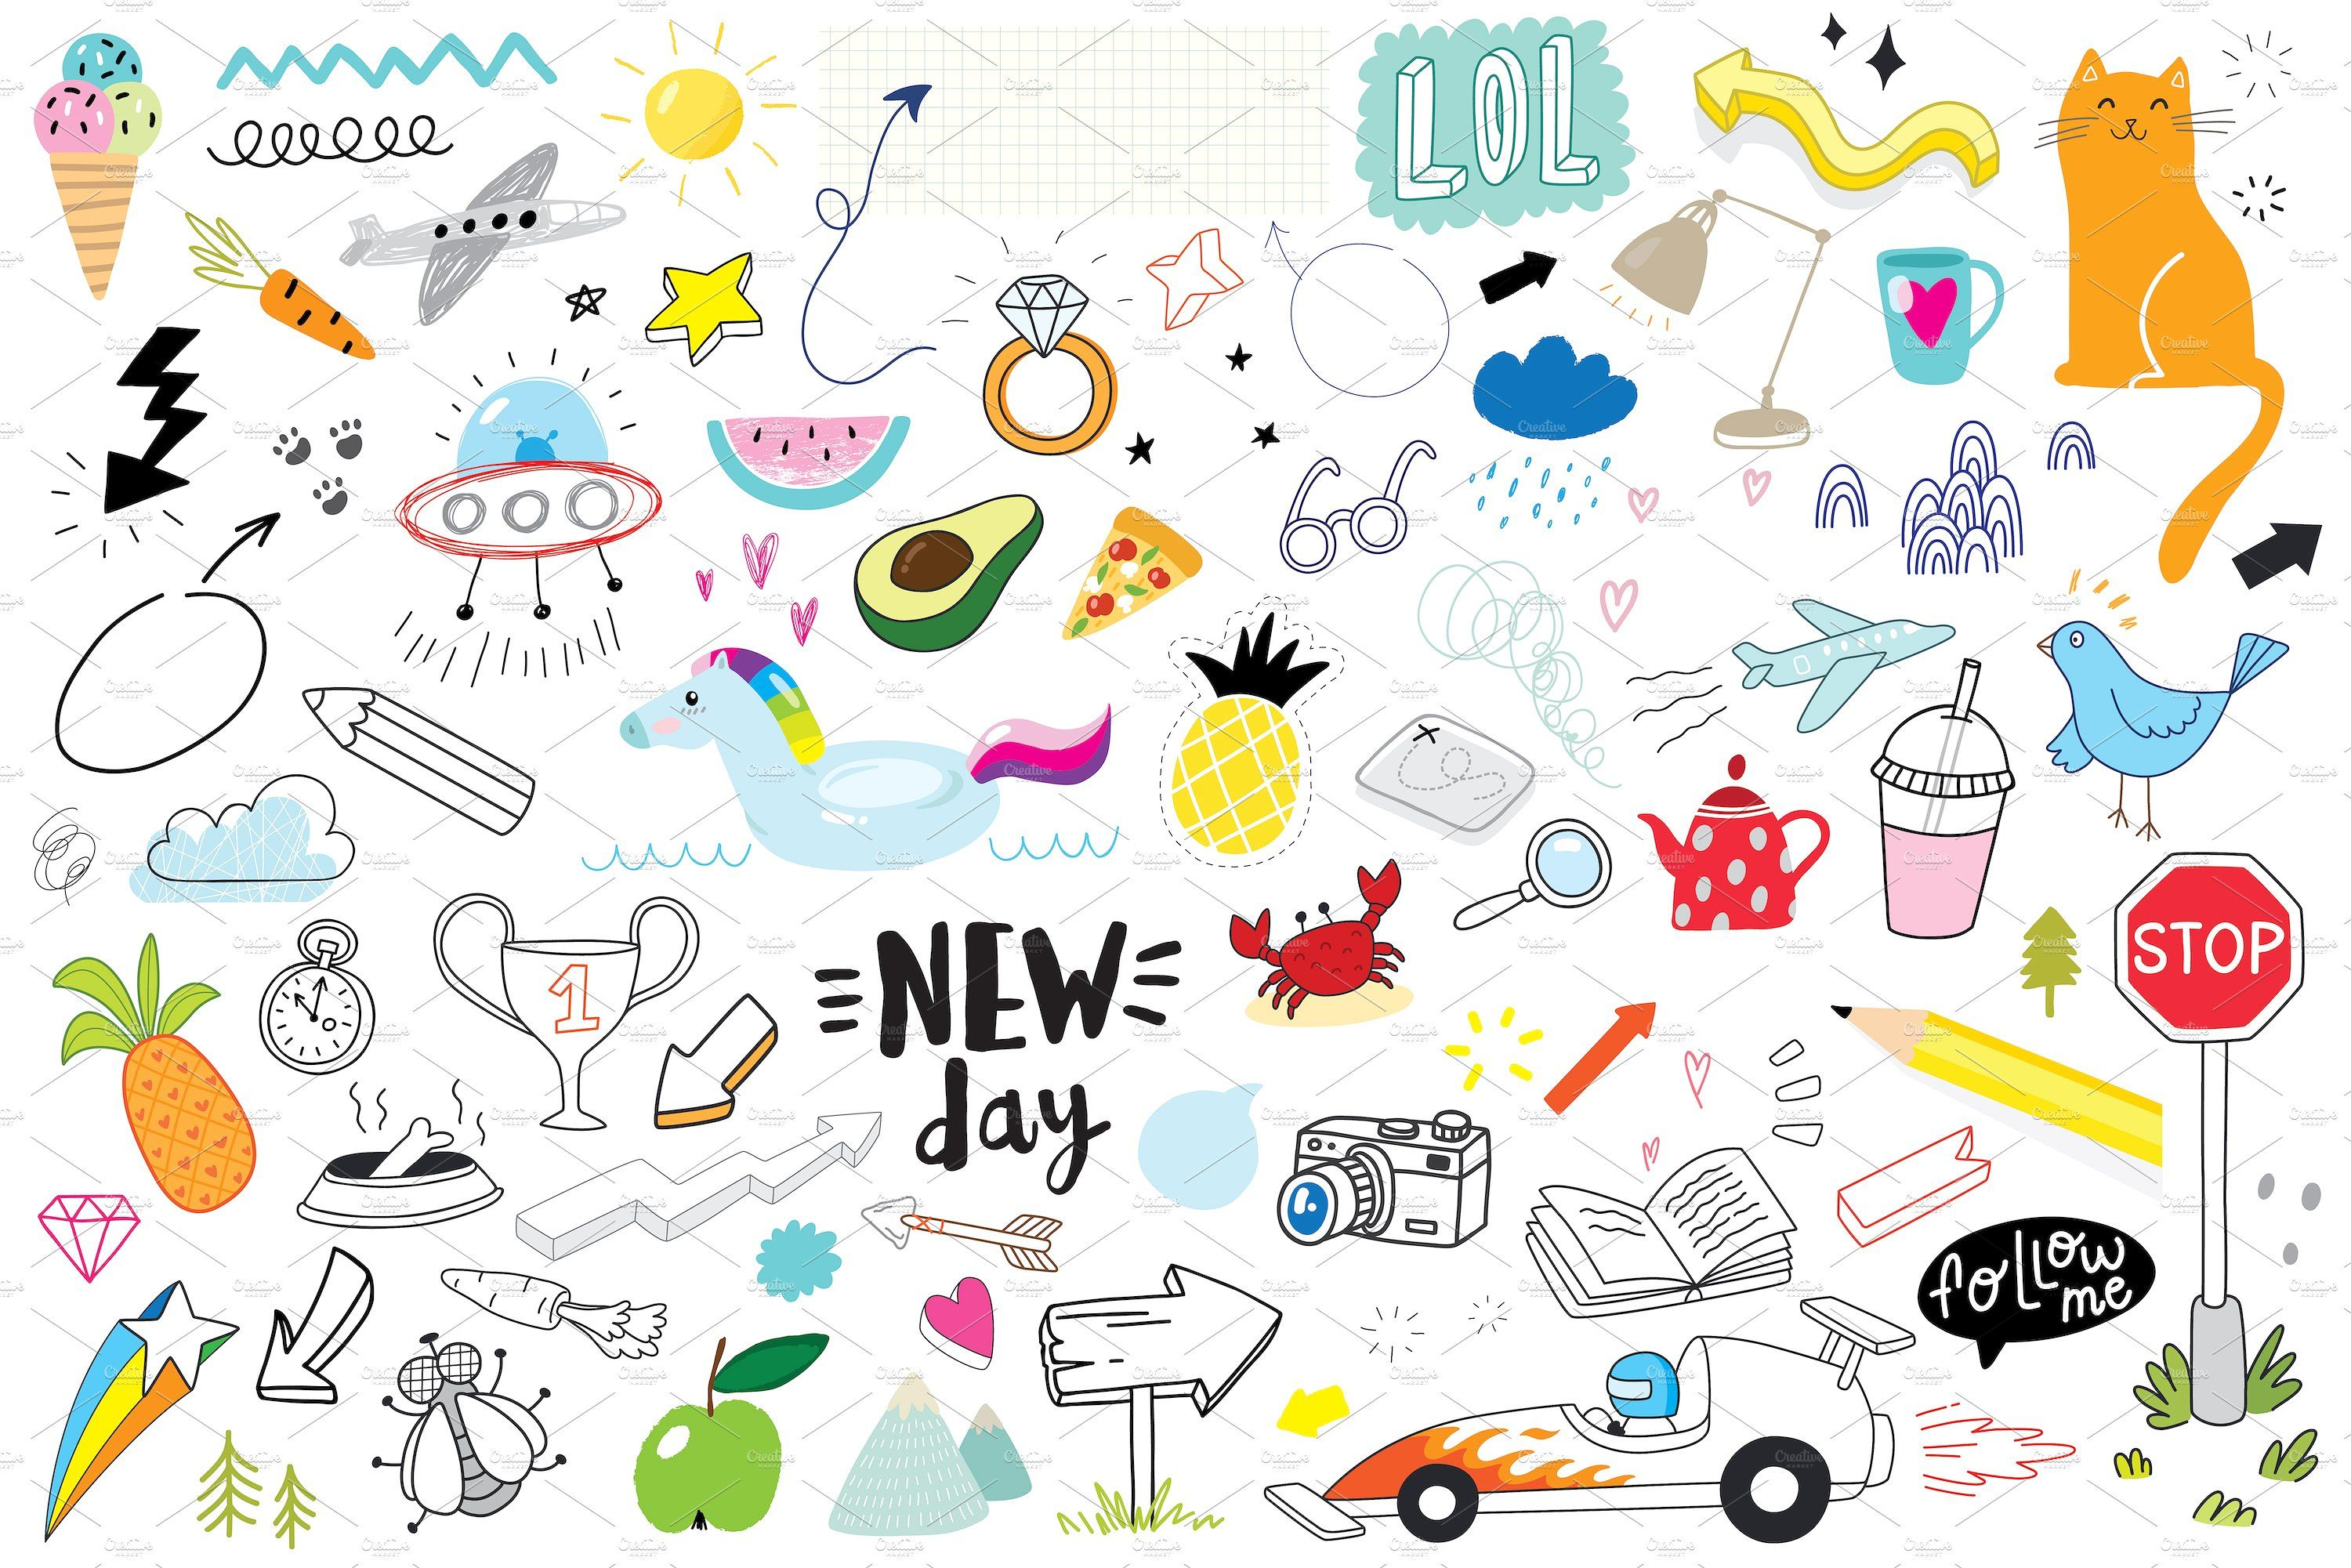 doodle set 2 (80 objects) icon, flaticon, icons, icon pack